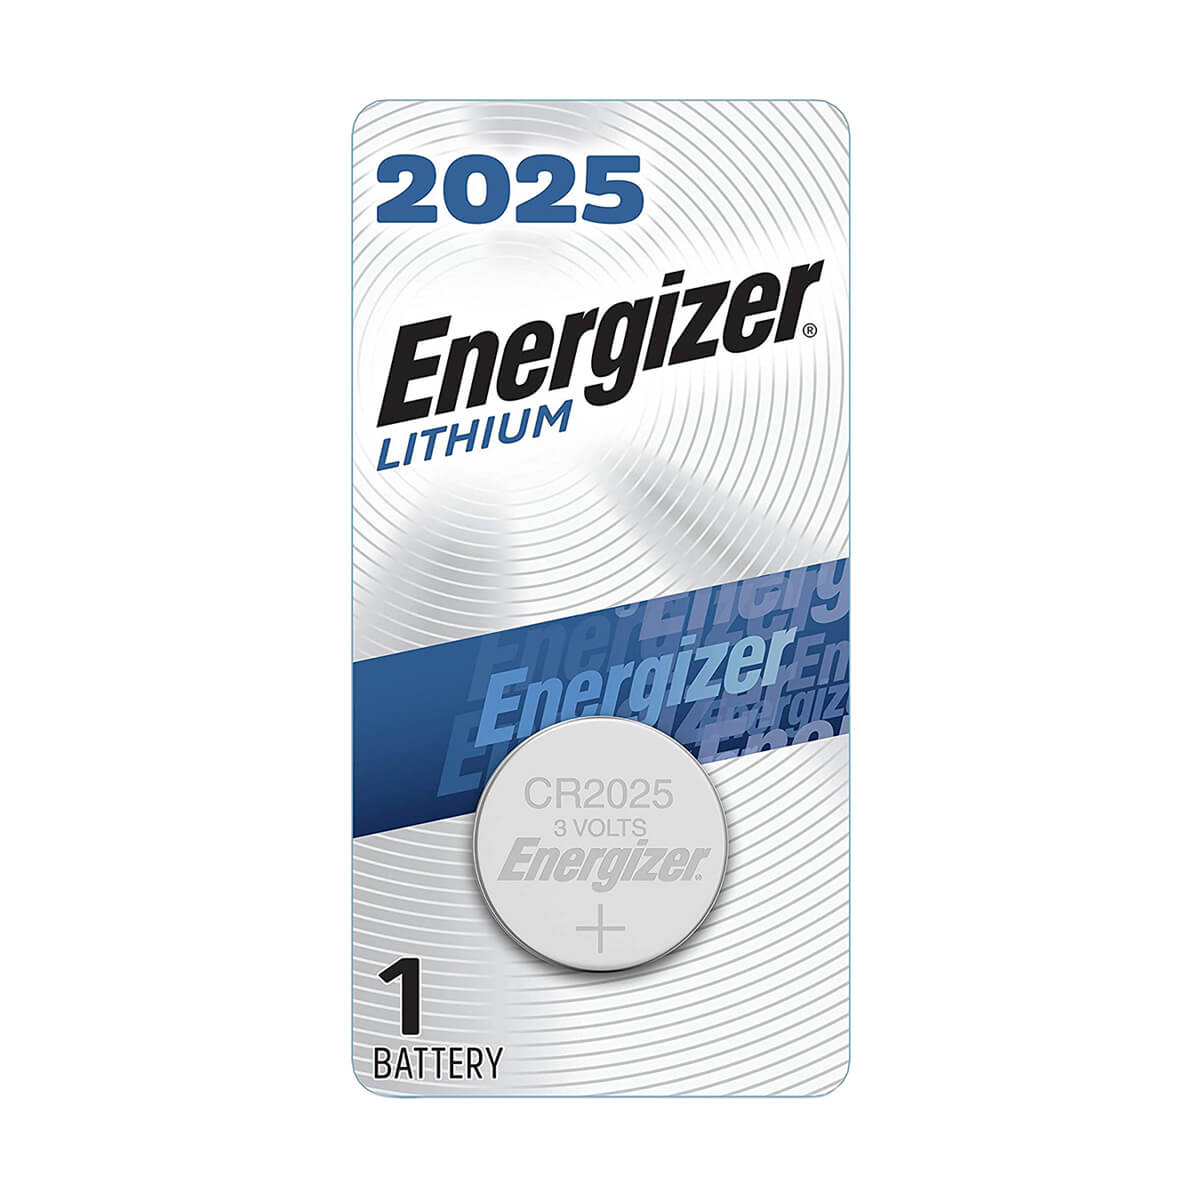 Coin Battery - Energizer Lithium - 2025